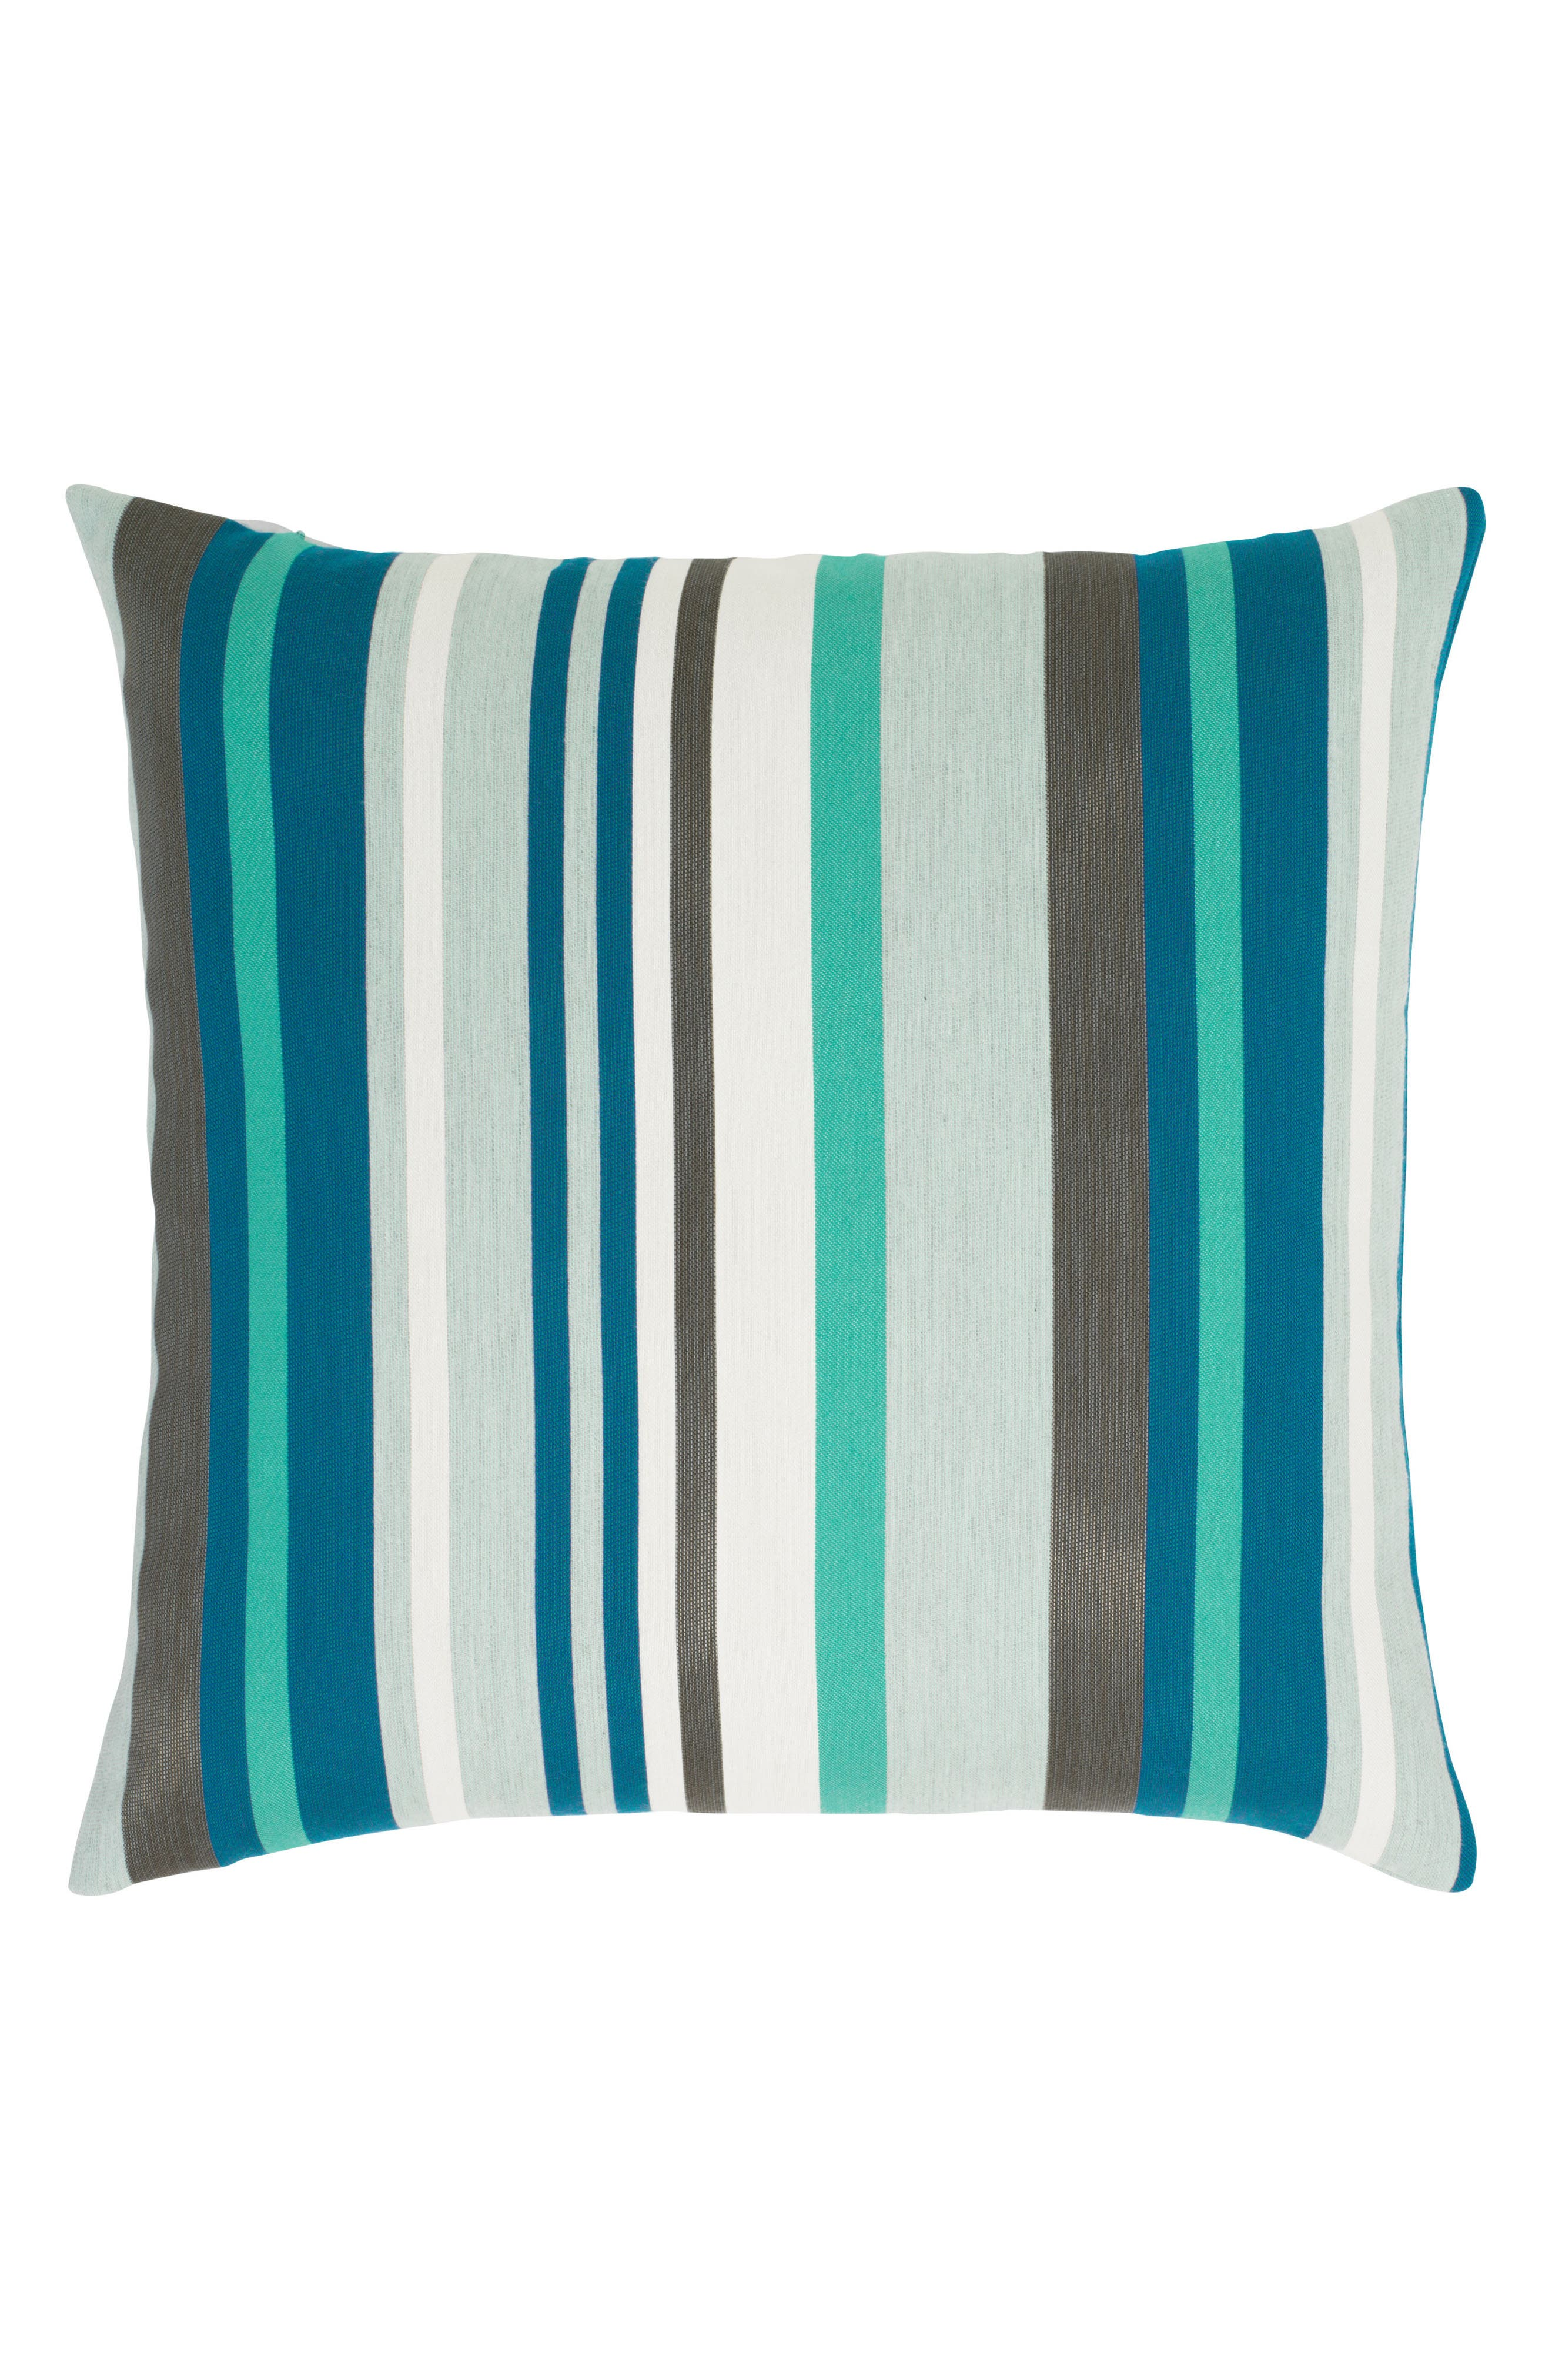 Lagoon Stripe Indoor/Outdoor Accent Pillow,                             Main thumbnail 1, color,                             BLUE MULTI